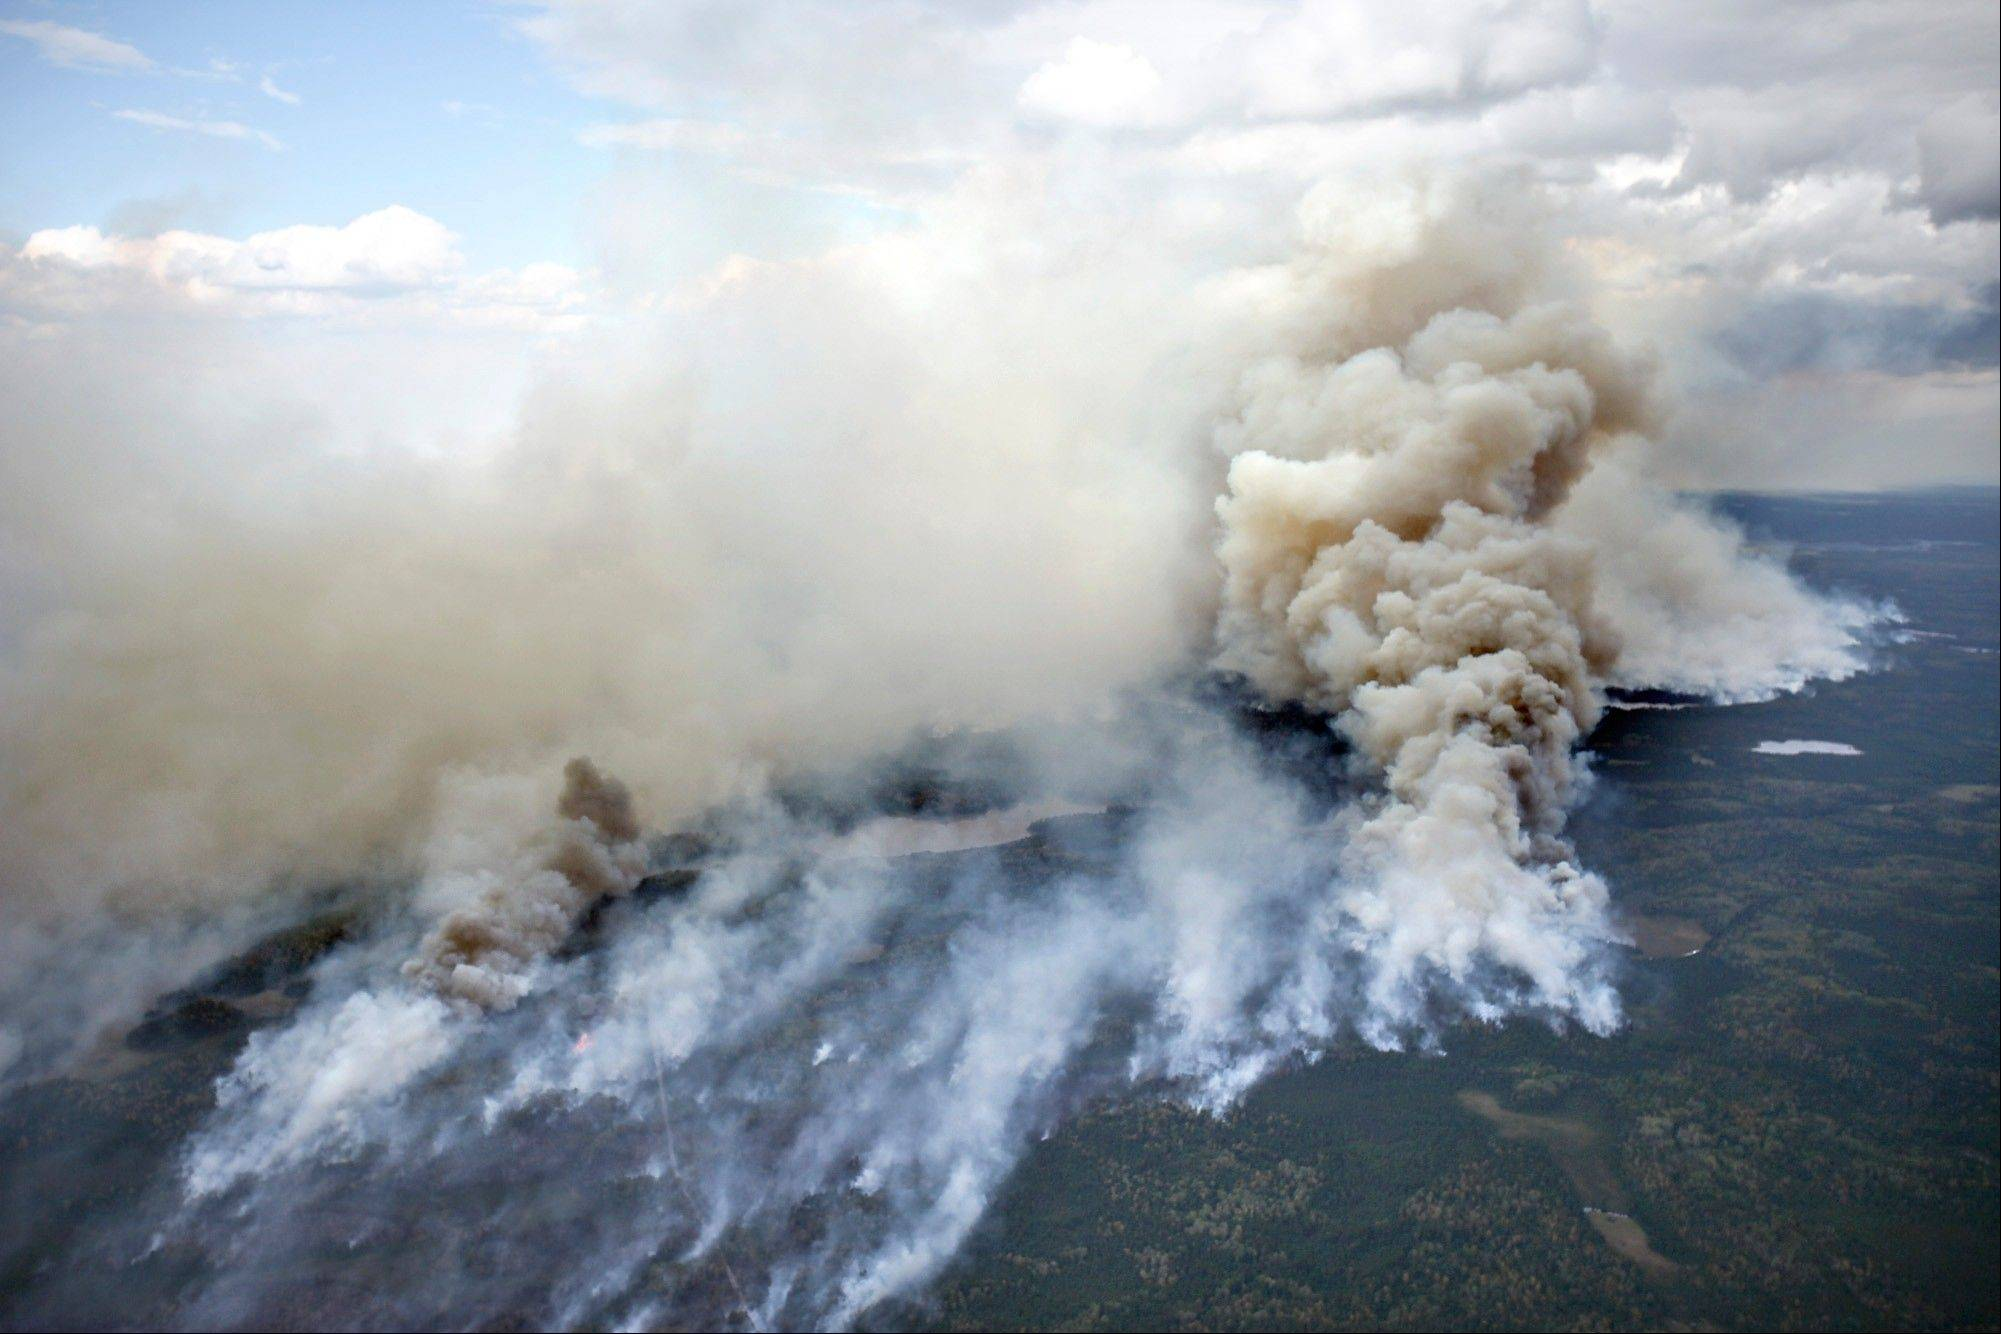 In this aerial photo, an area of the Pagami Creek wildfire shows active burning and creates a large smoke plume on Tuesday in the Boundary Waters Canoe Area Wilderness in Northeastern Minnesota. The haze from the fire was heavy enough that some people reported burning eyes and difficulty breathing in the Chicago area, 600 miles south of the forest fire, the National Weather Service said.